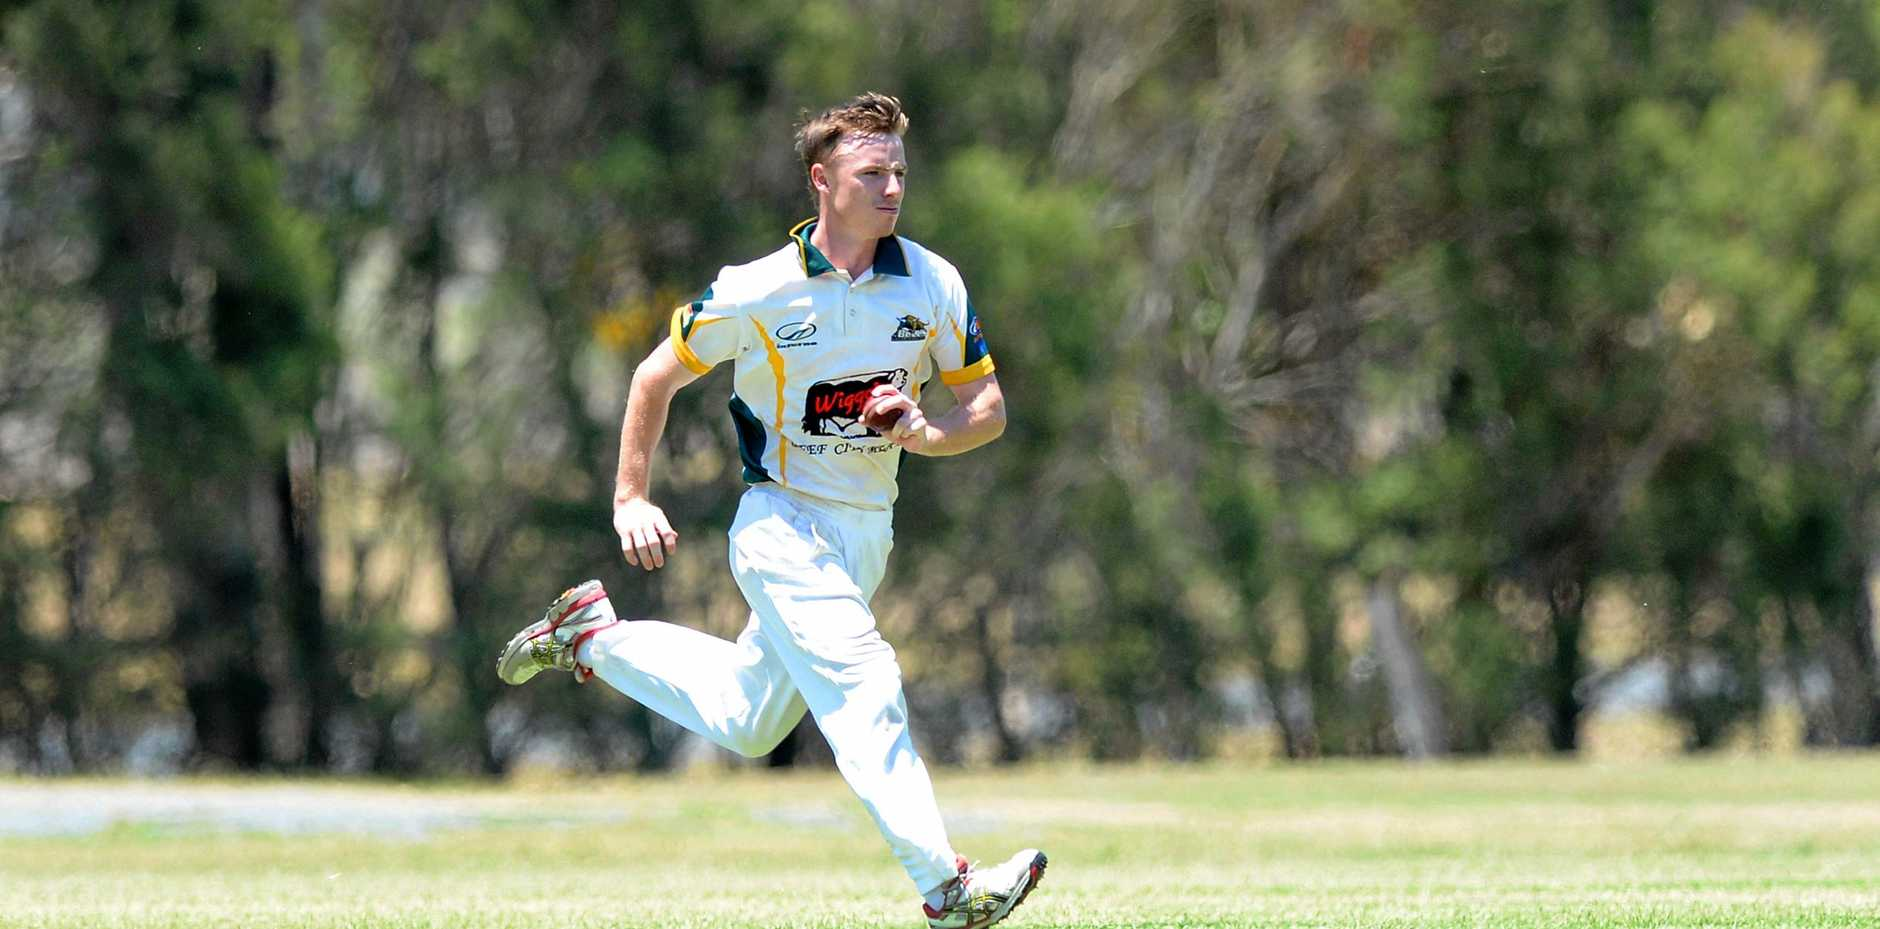 Gracemere's opening bowler Kade Horan took his second five-wicket haul for the season in his team's big win over BITS at the weekend.